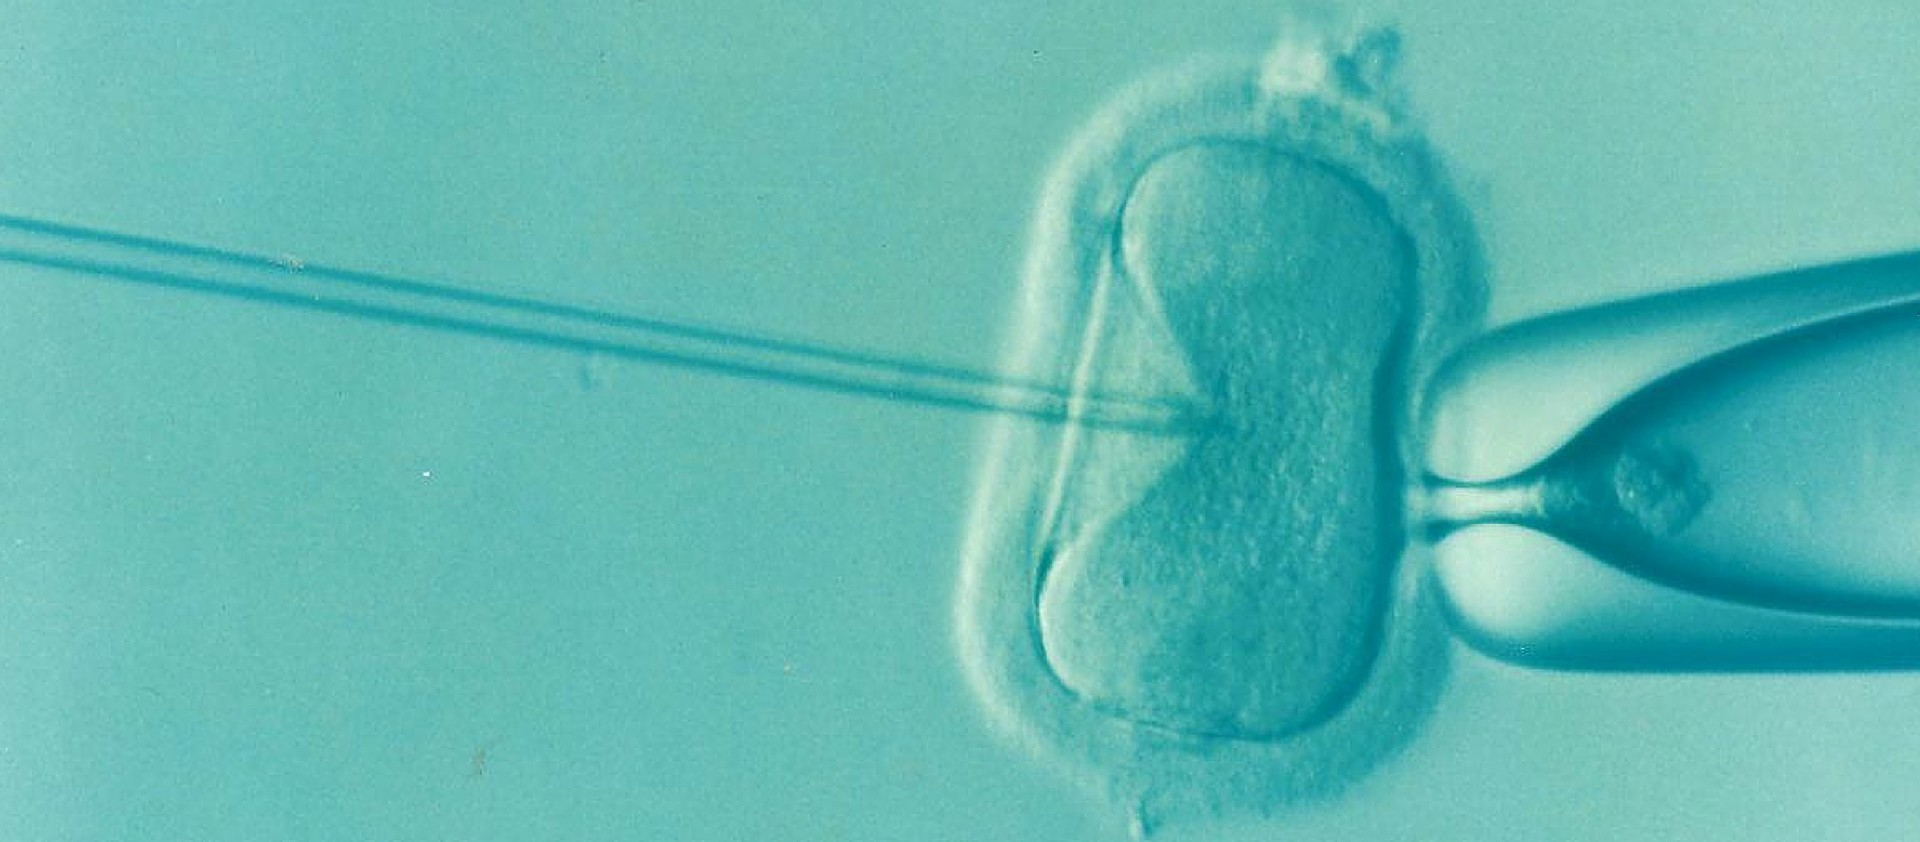 CO2 Inkubator in vitro fertilisation